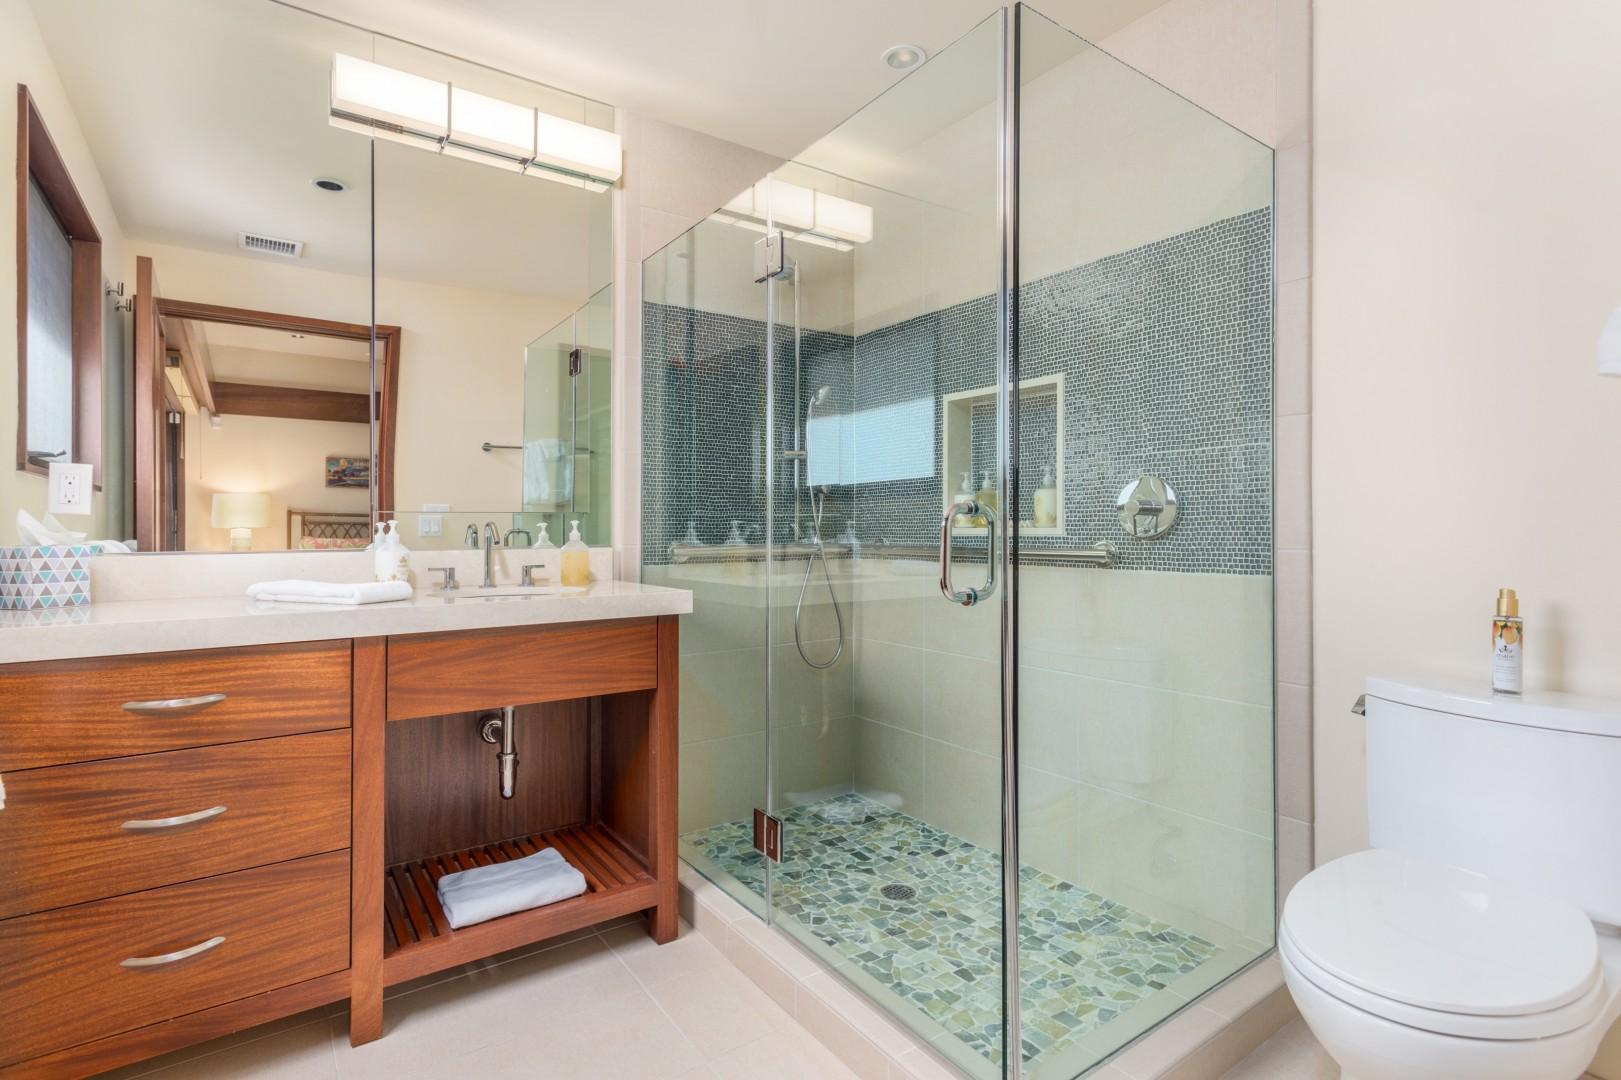 Fourth Bathroom, Recently Remodeled, w/Walk-In Shower & Custom Soft-Close Cabinetry.